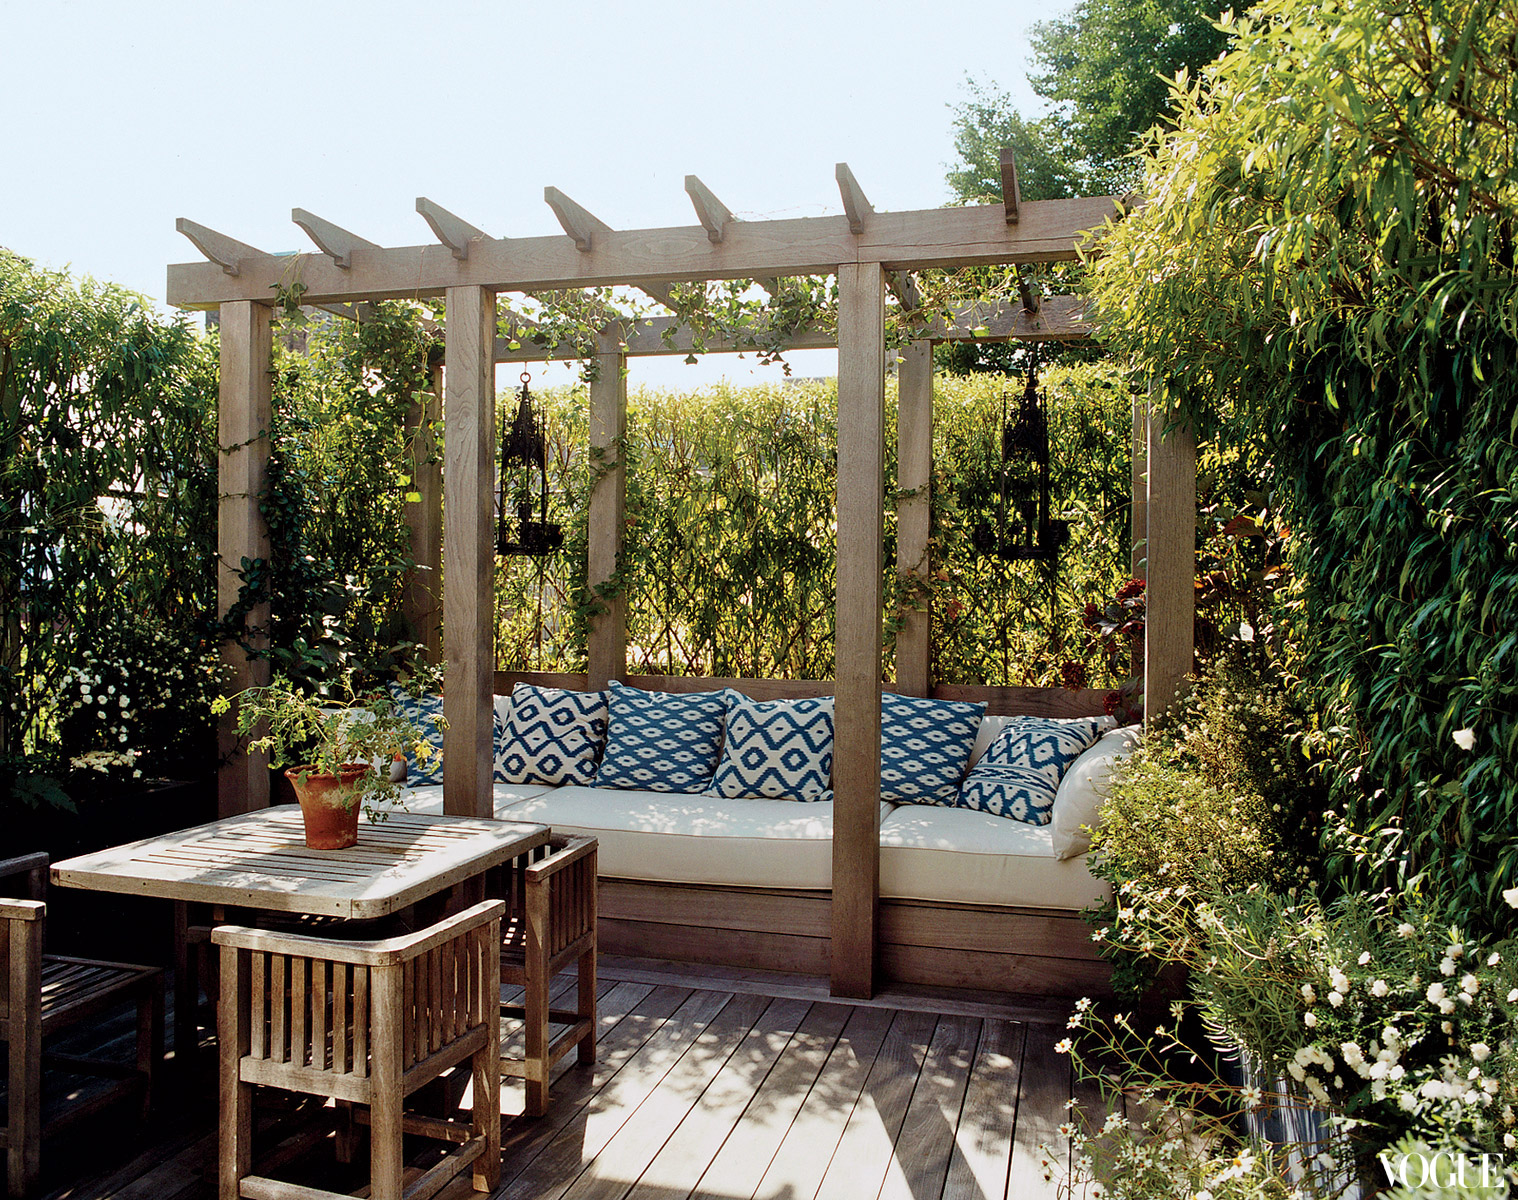 Townhouse Backyard Decks : This private rooftop decklandscaped by Miranda Brooks looks ideal